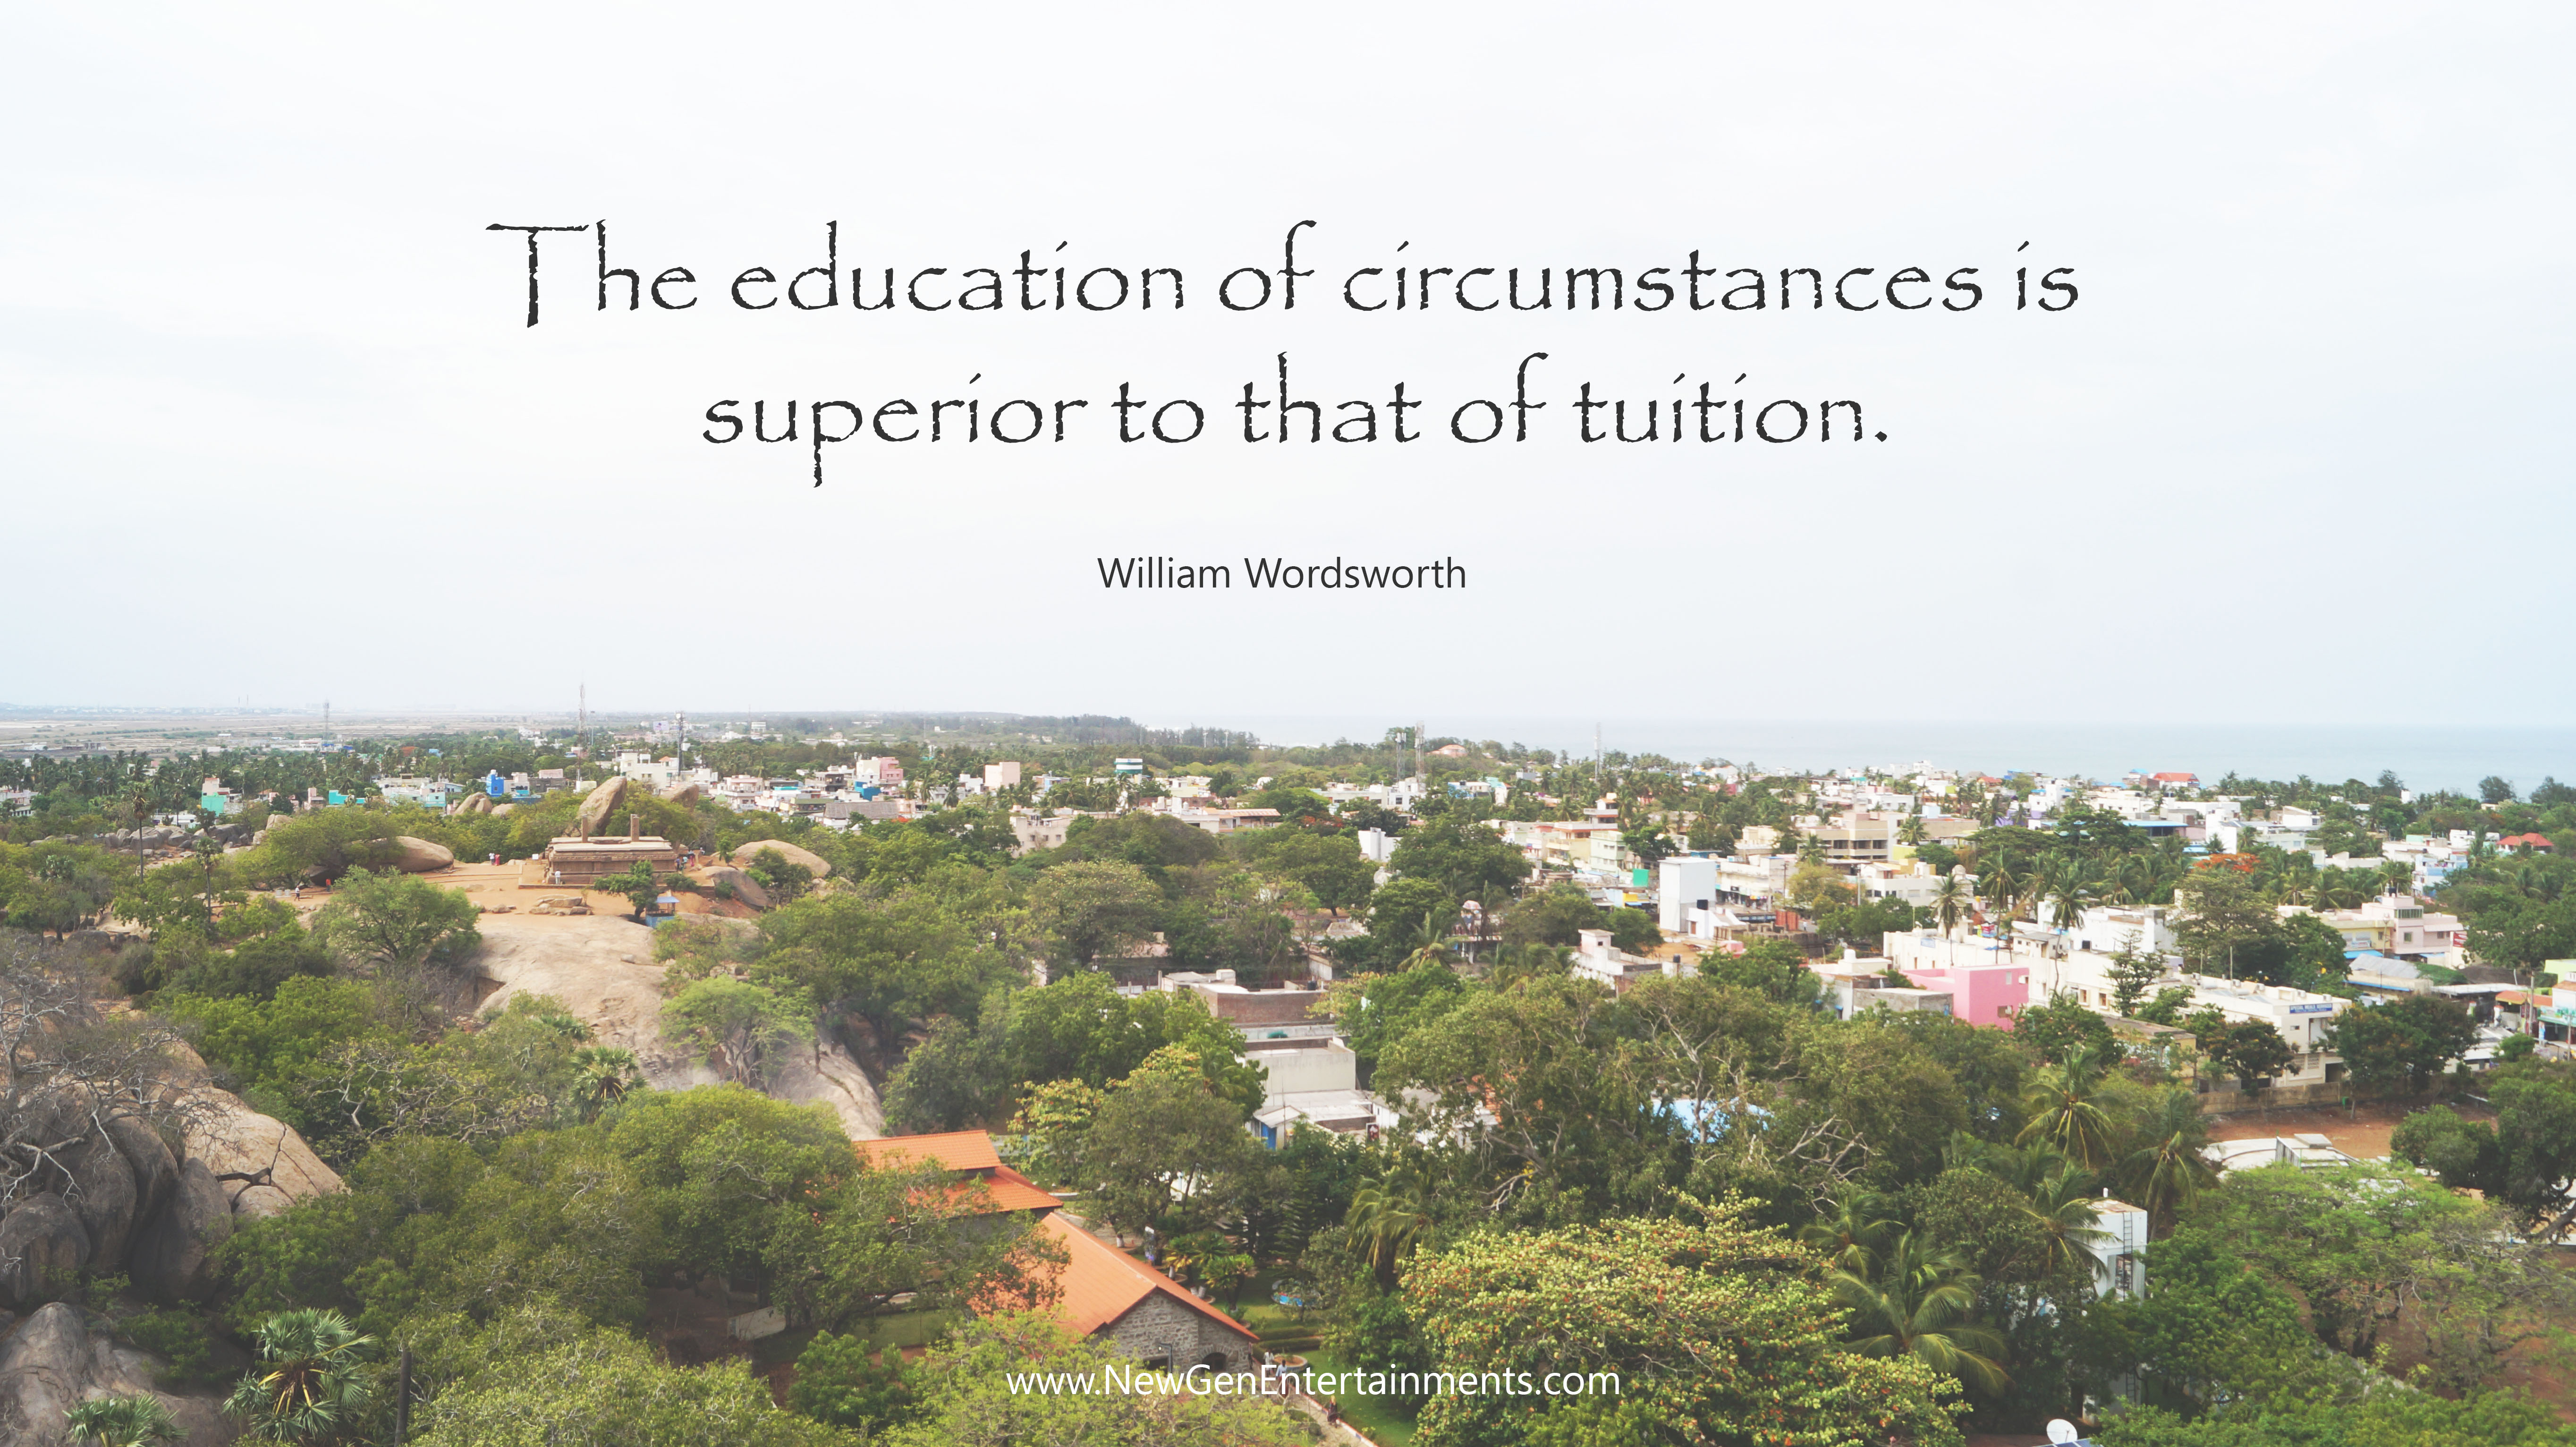 The education of circumstances is superior to that of tuition